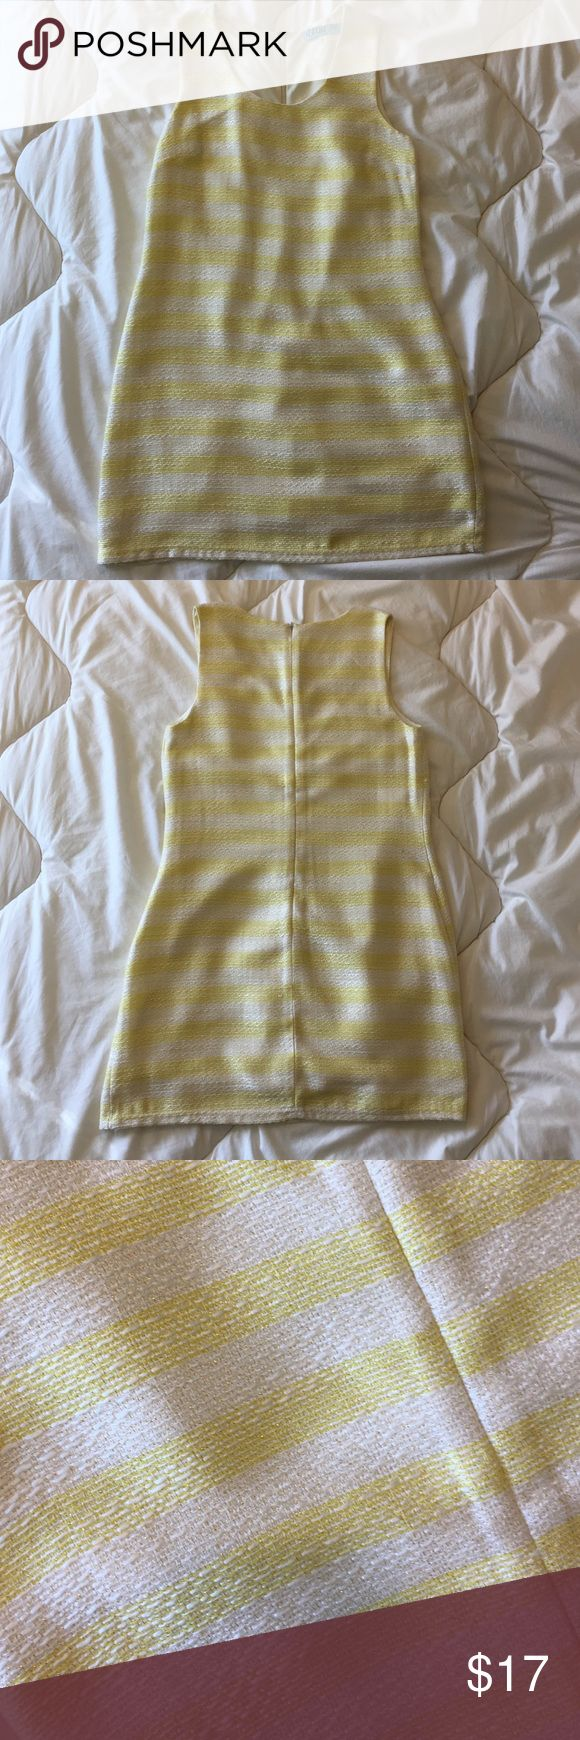 White & Yellow Striped Cocktail Dress with Gold This yellow & white striped cocktail dress with gold details woven in (see pictures) is perfect for any event! Only worn once with a belt for a bridal shower. Originally purchased from Francesca's. Aina Be Dresses Mini